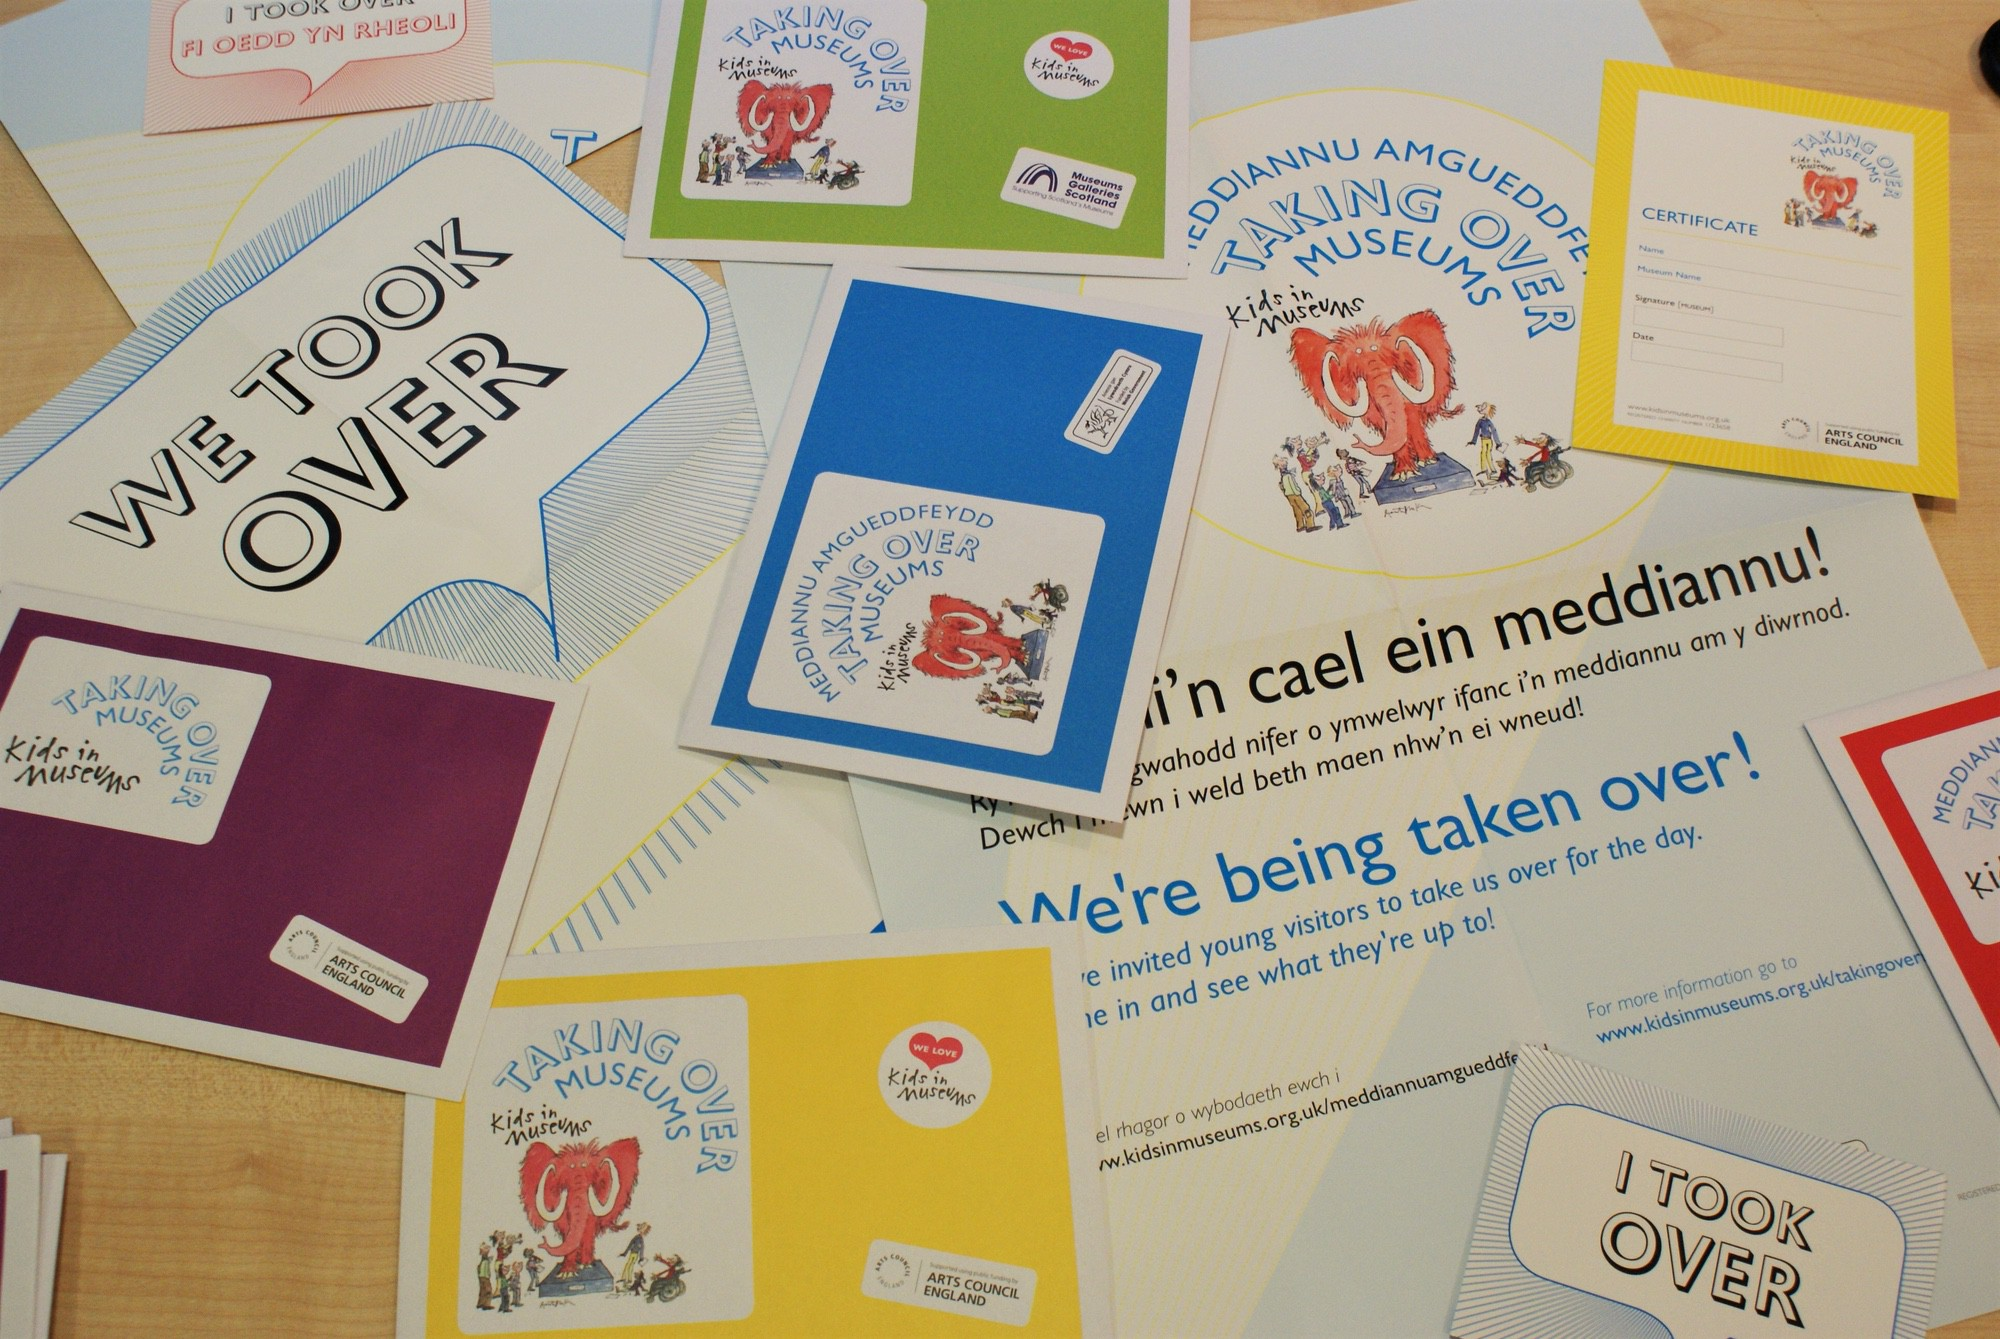 Takeover day leaflets